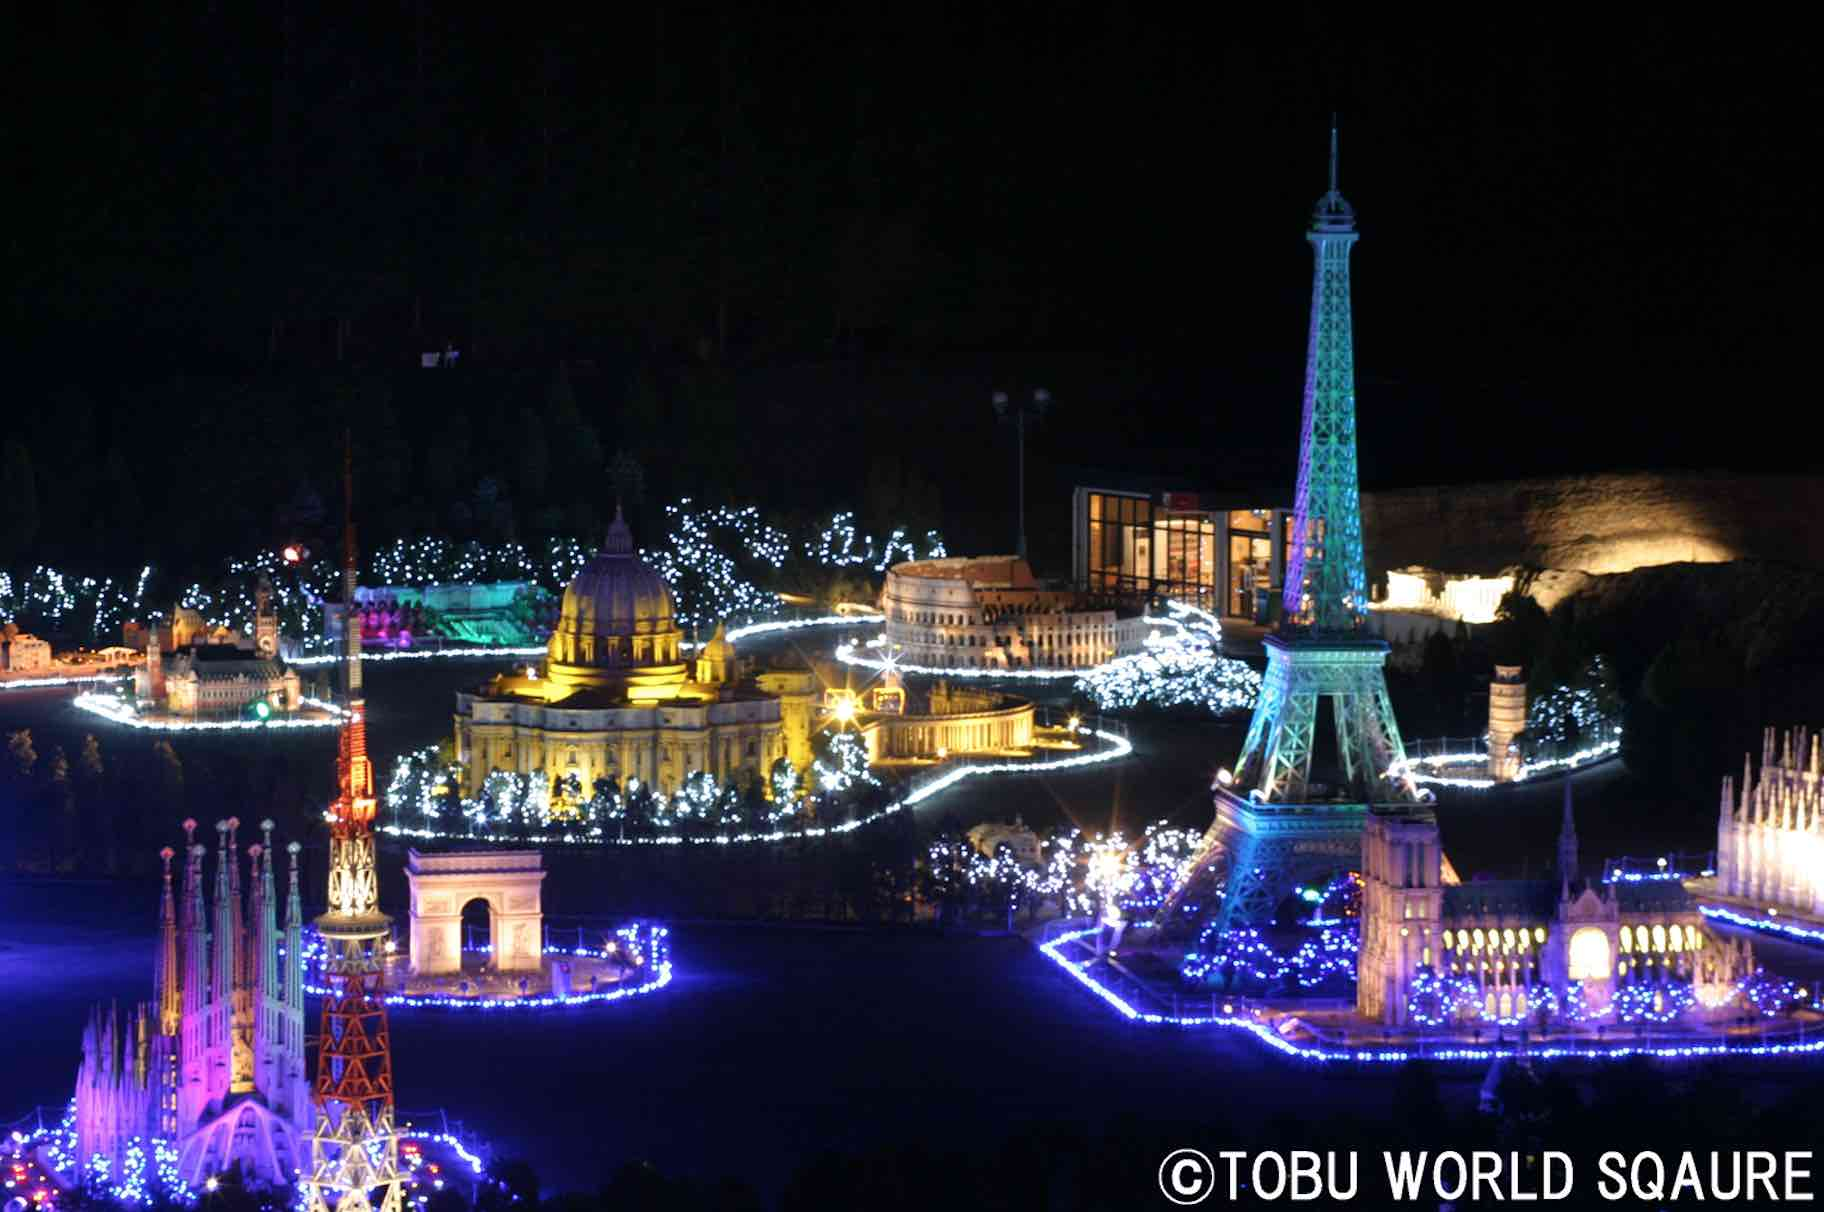 tobu-world-square-illumination-japan-aspirantsg